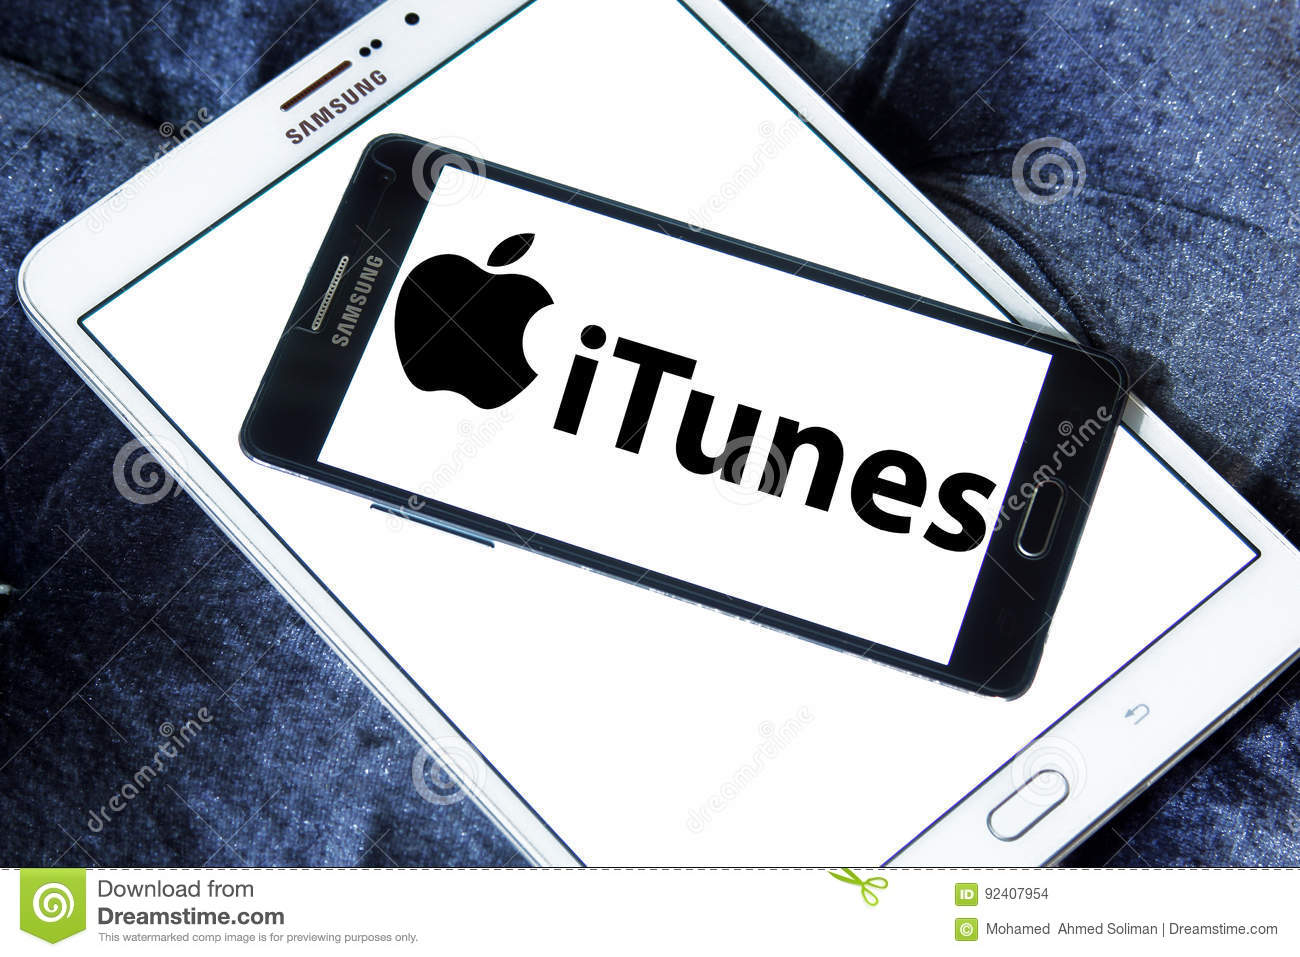 Itunes logo editorial stock image  Image of globalization - 92407954